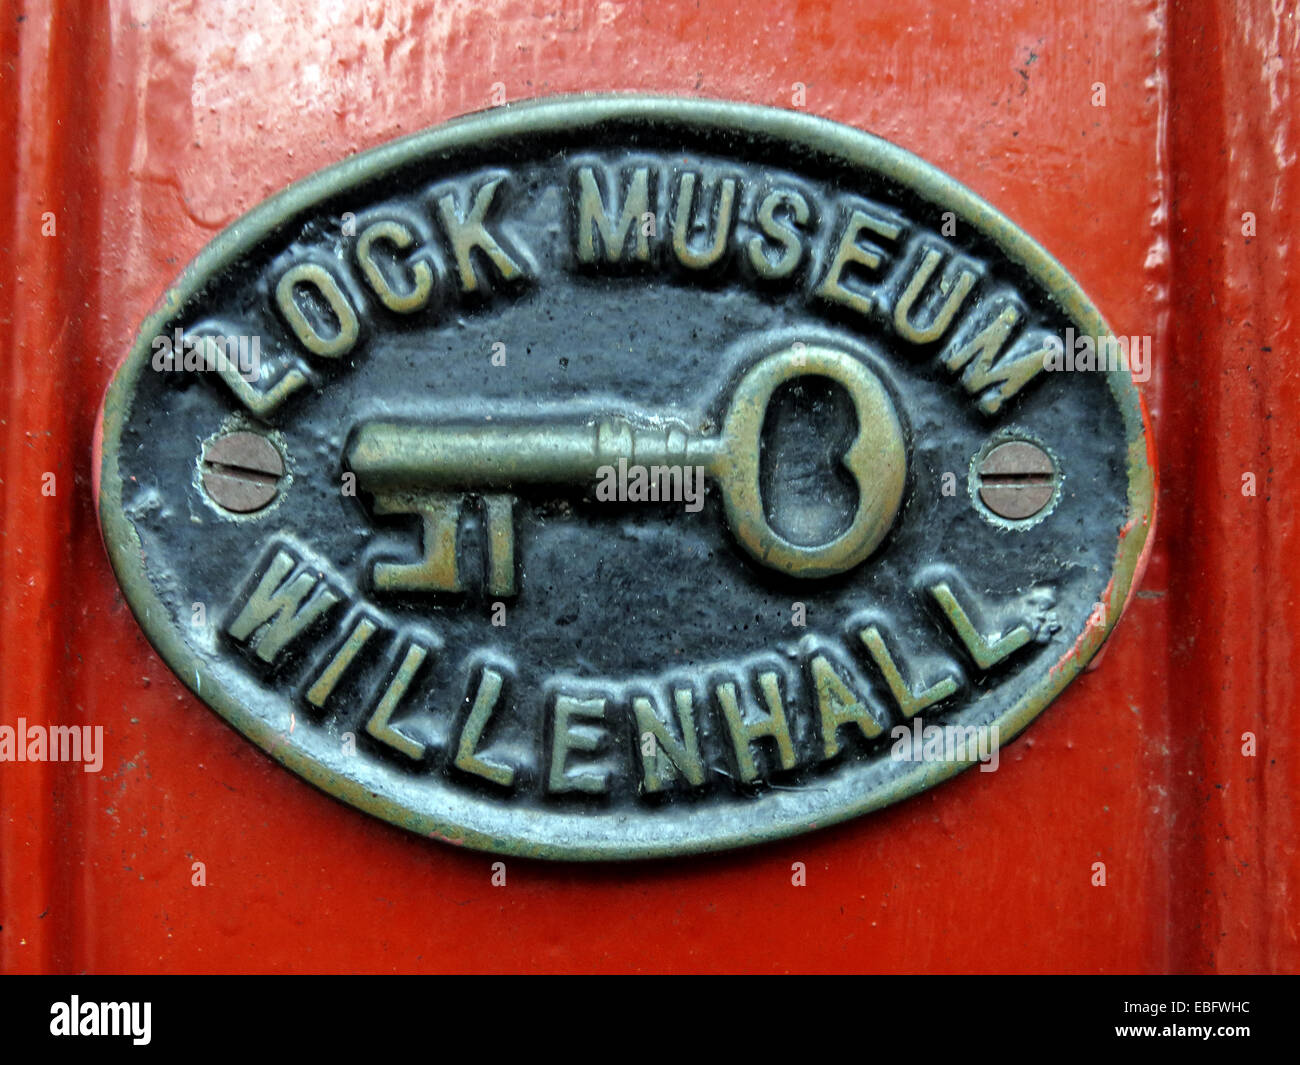 Sign from Willenhall Lock Museum, Walsall West Midlands, England, United Kingdom - Stock Image